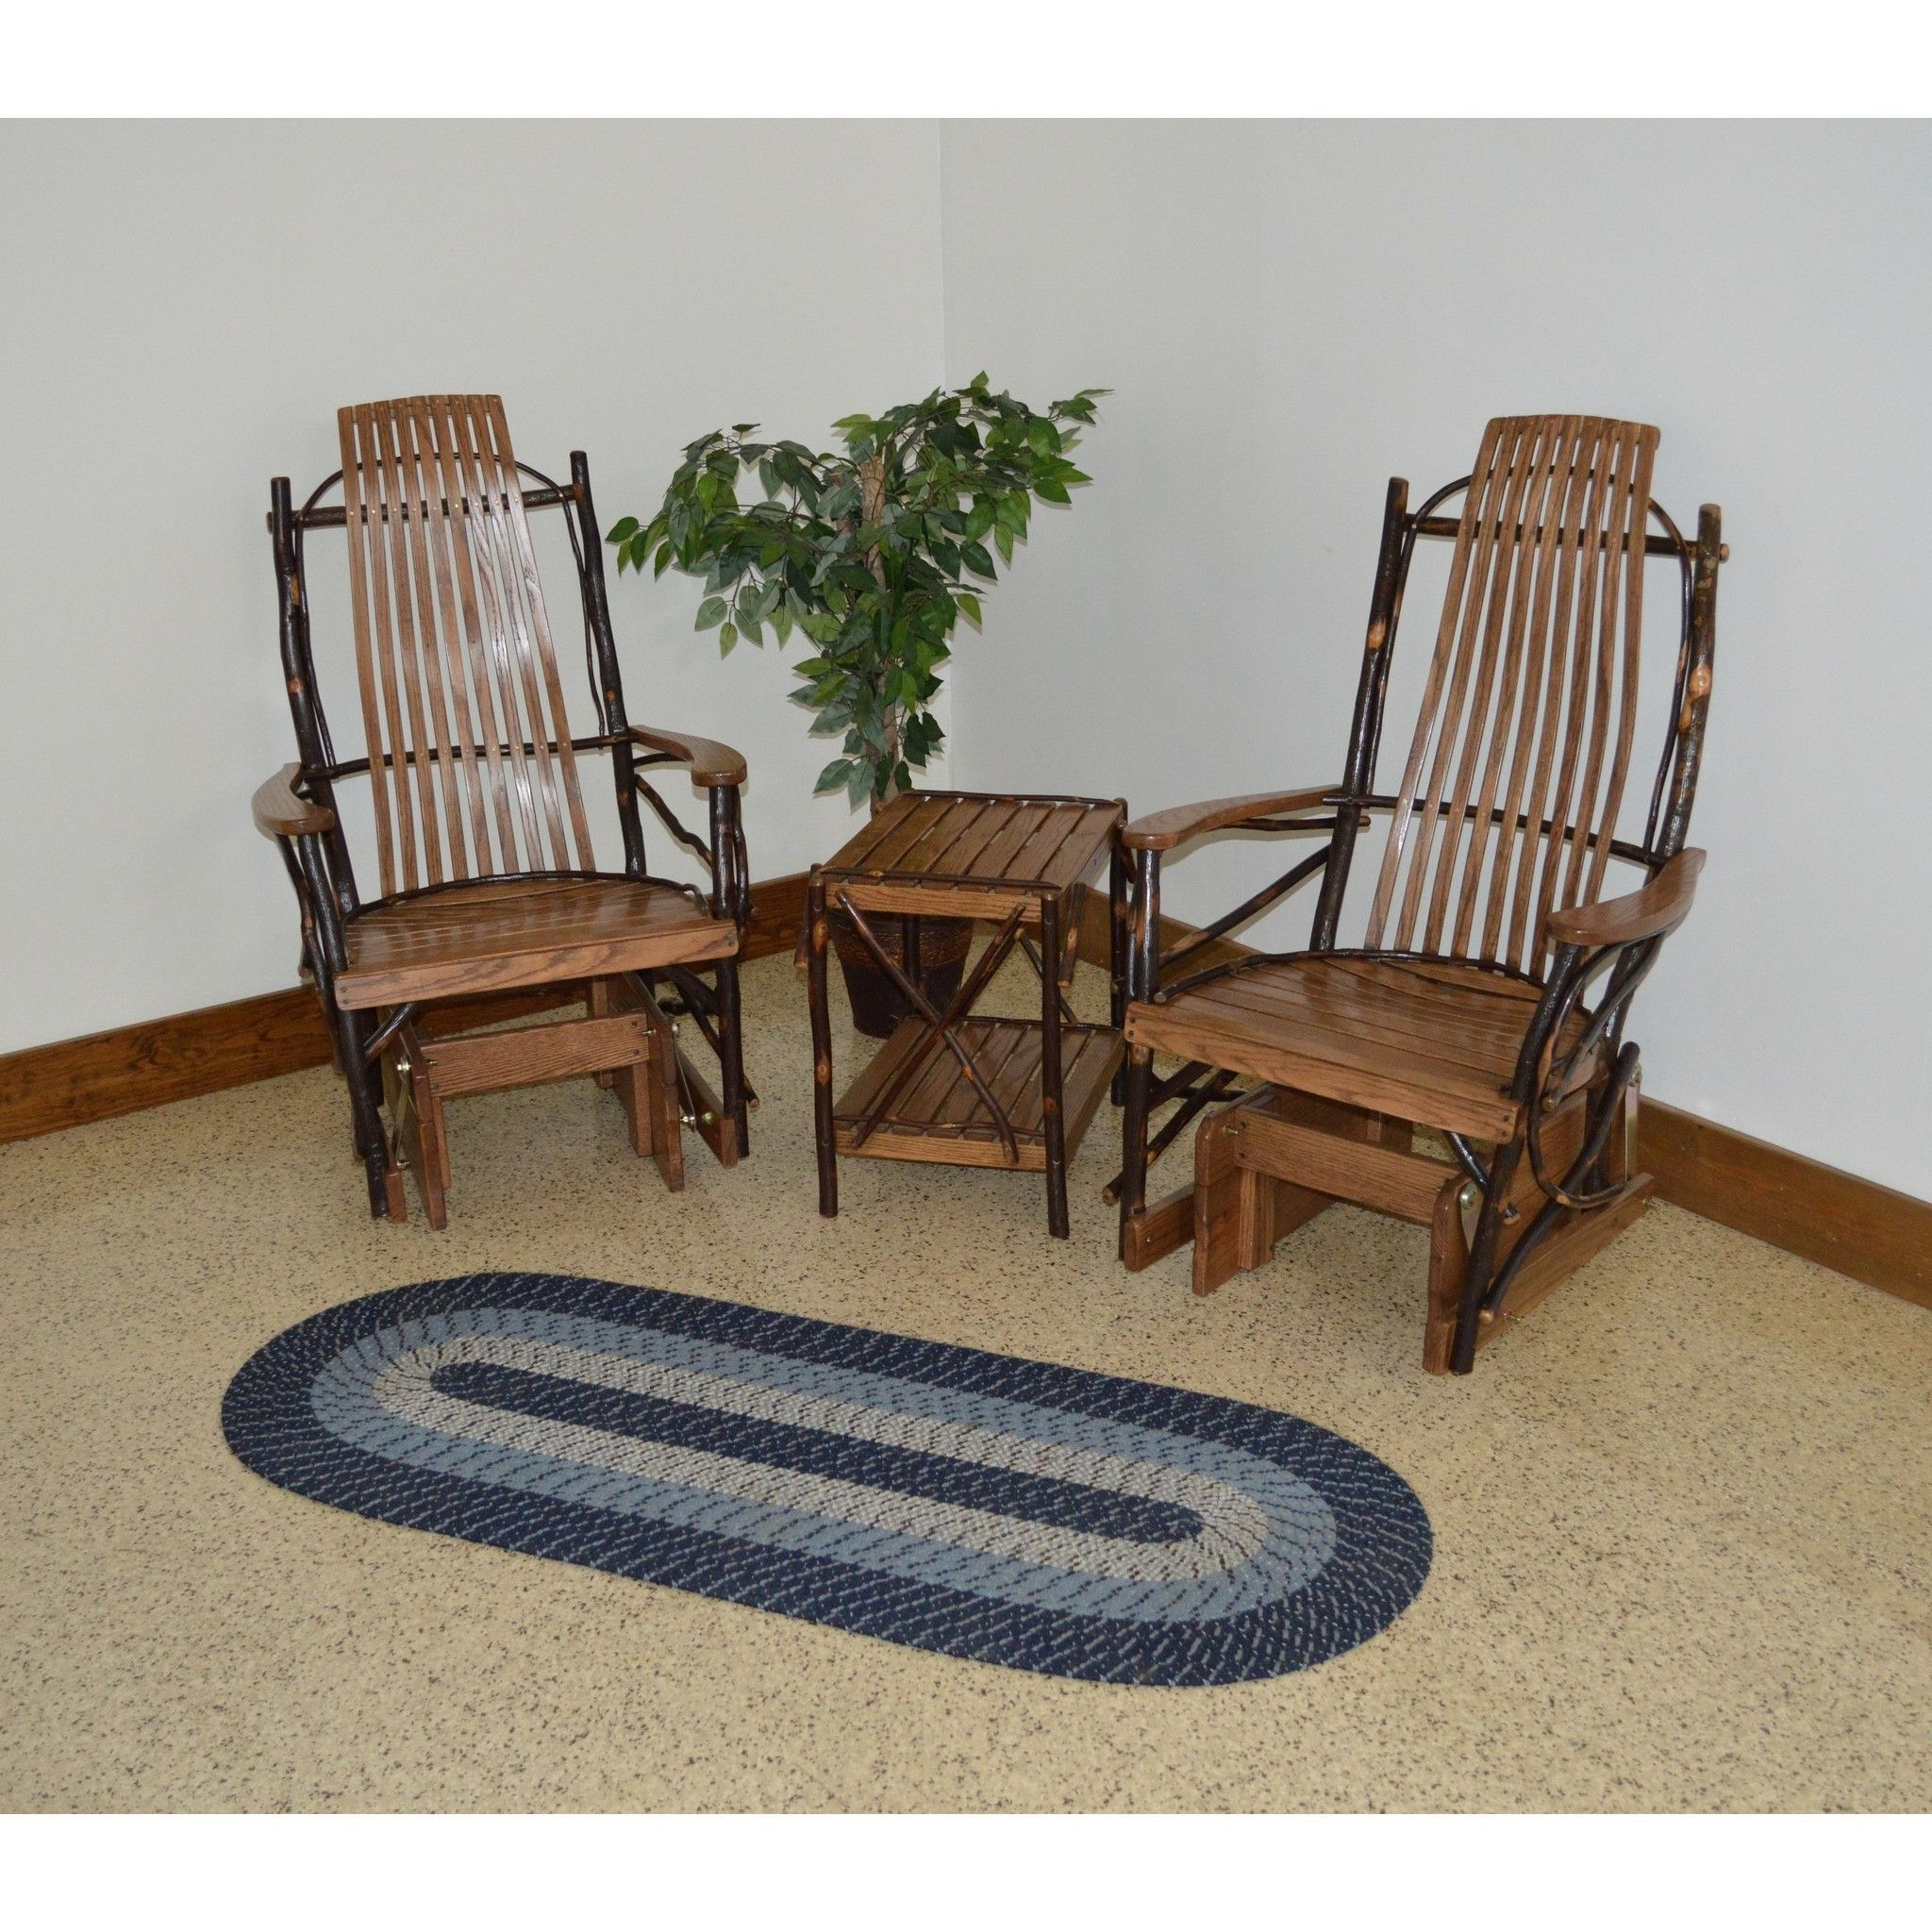 A & L Furniture Co. Amish Bentwood Hickory Glider Rockers